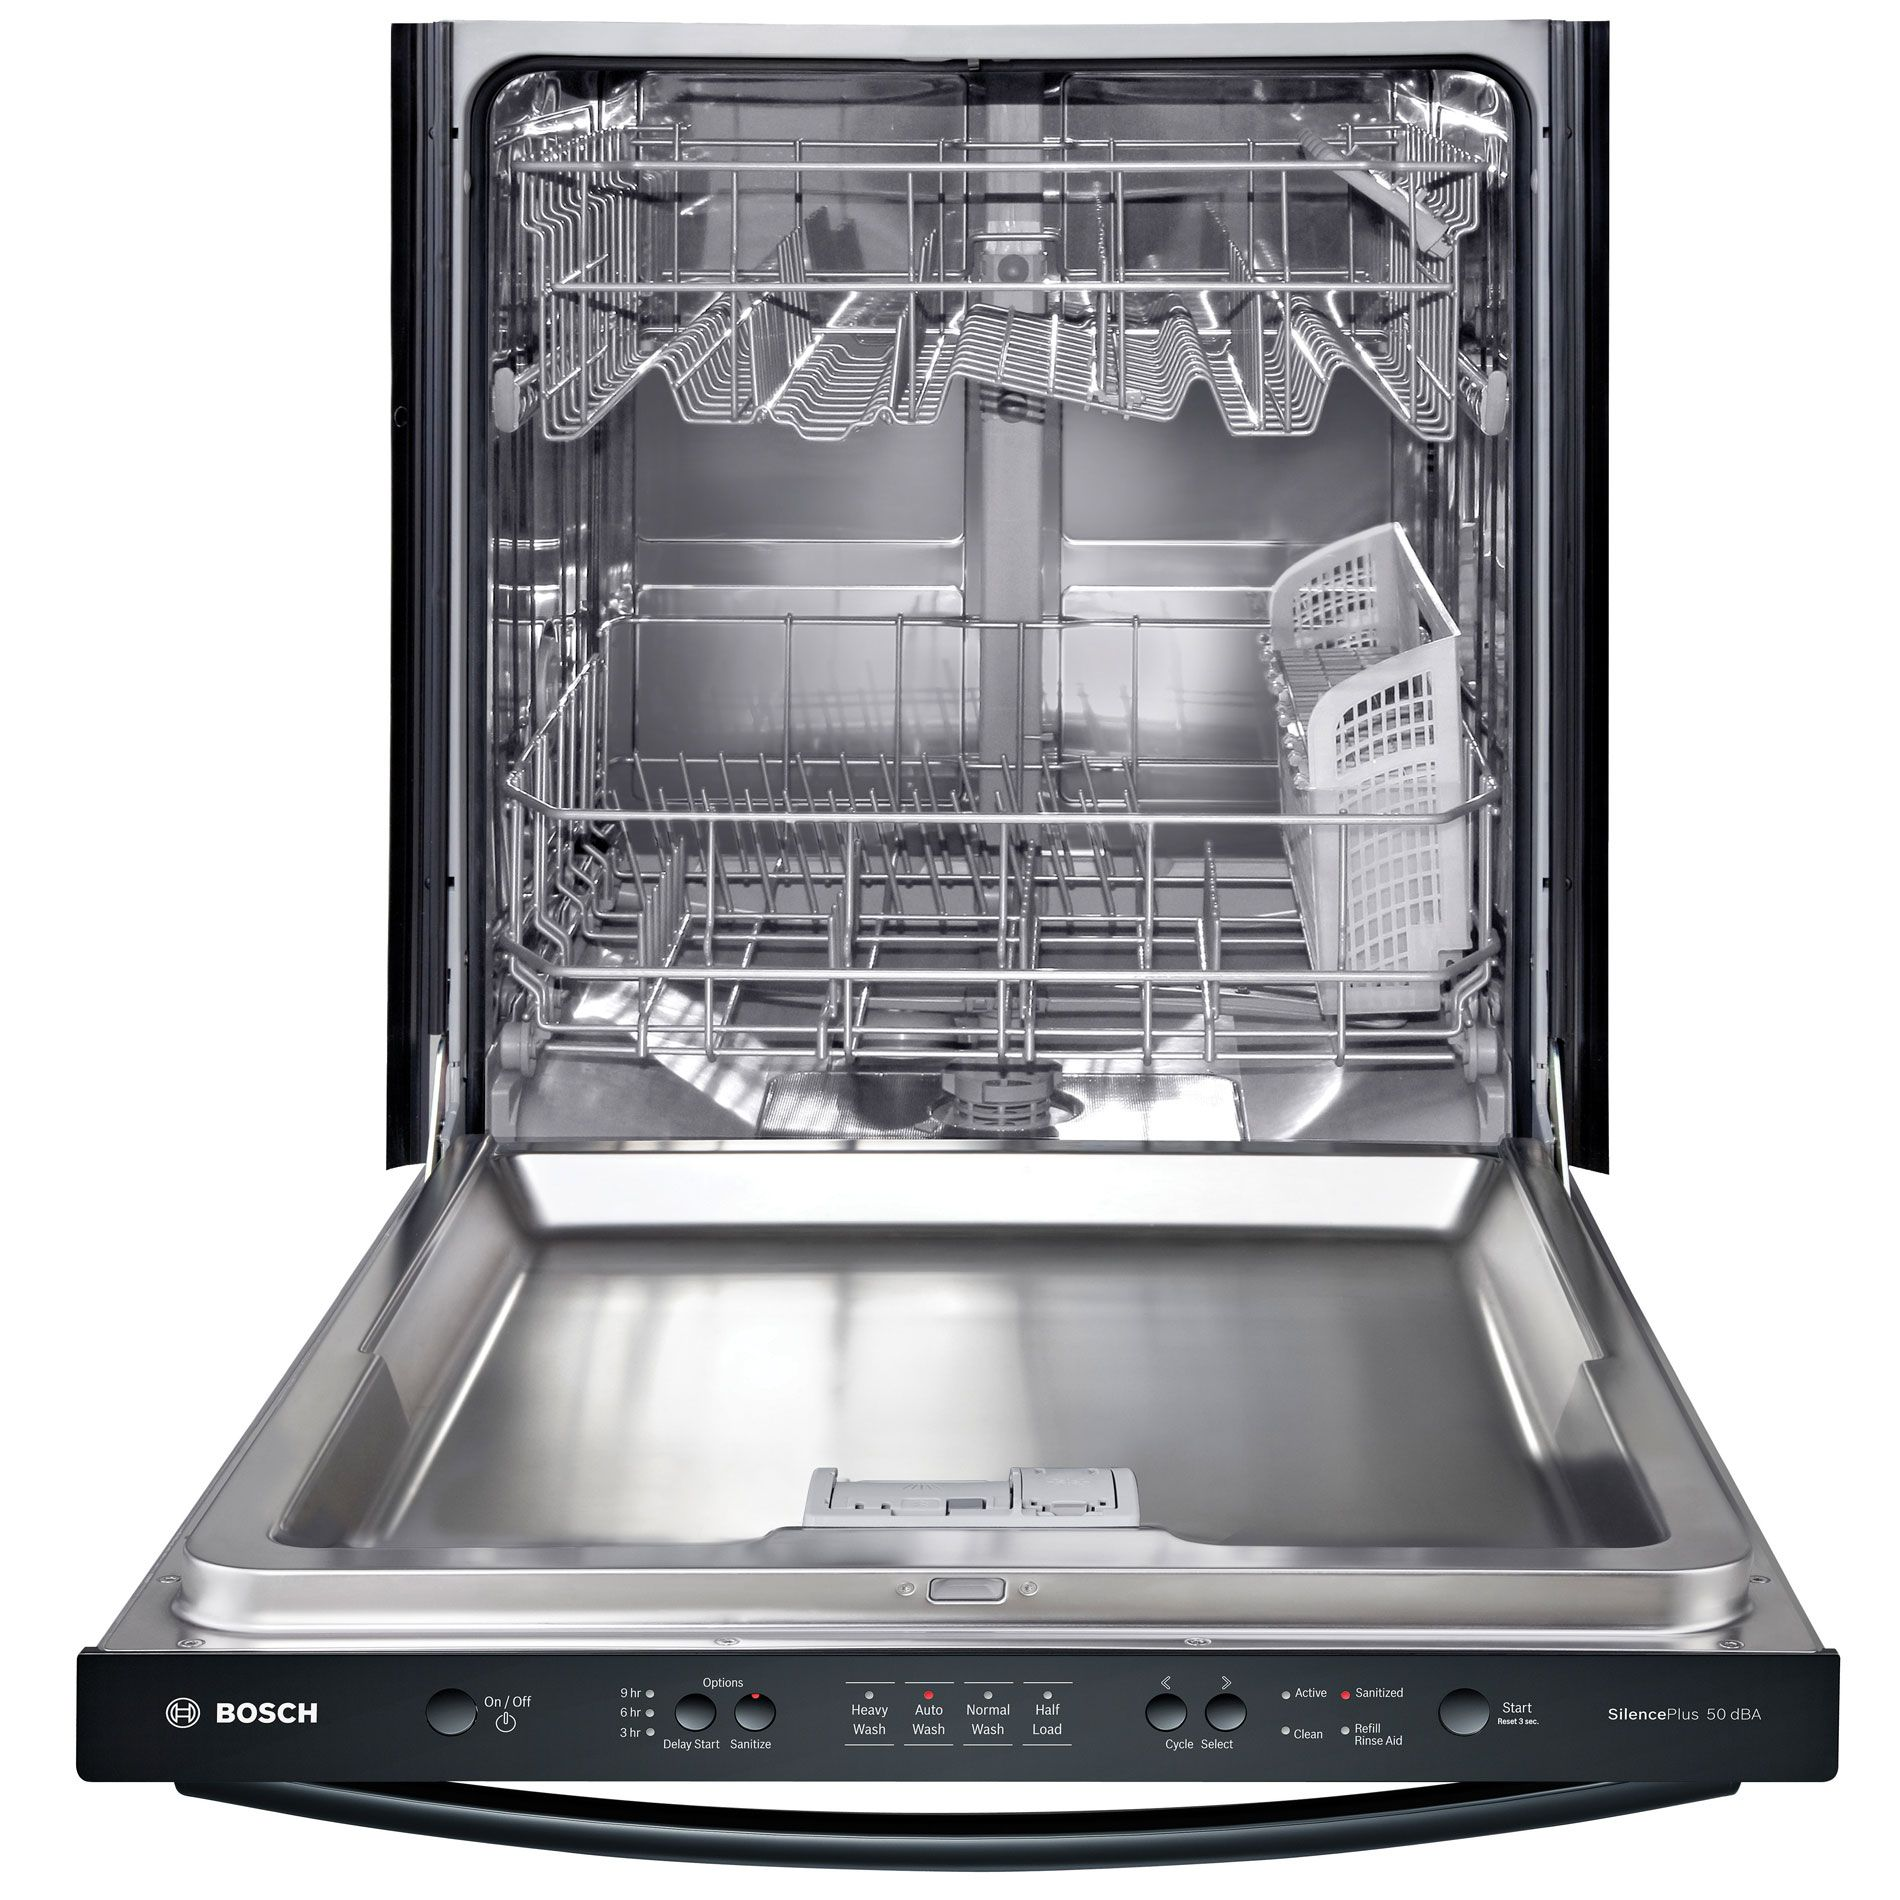 "Bosch 24"" Built-In Dishwasher - Black"